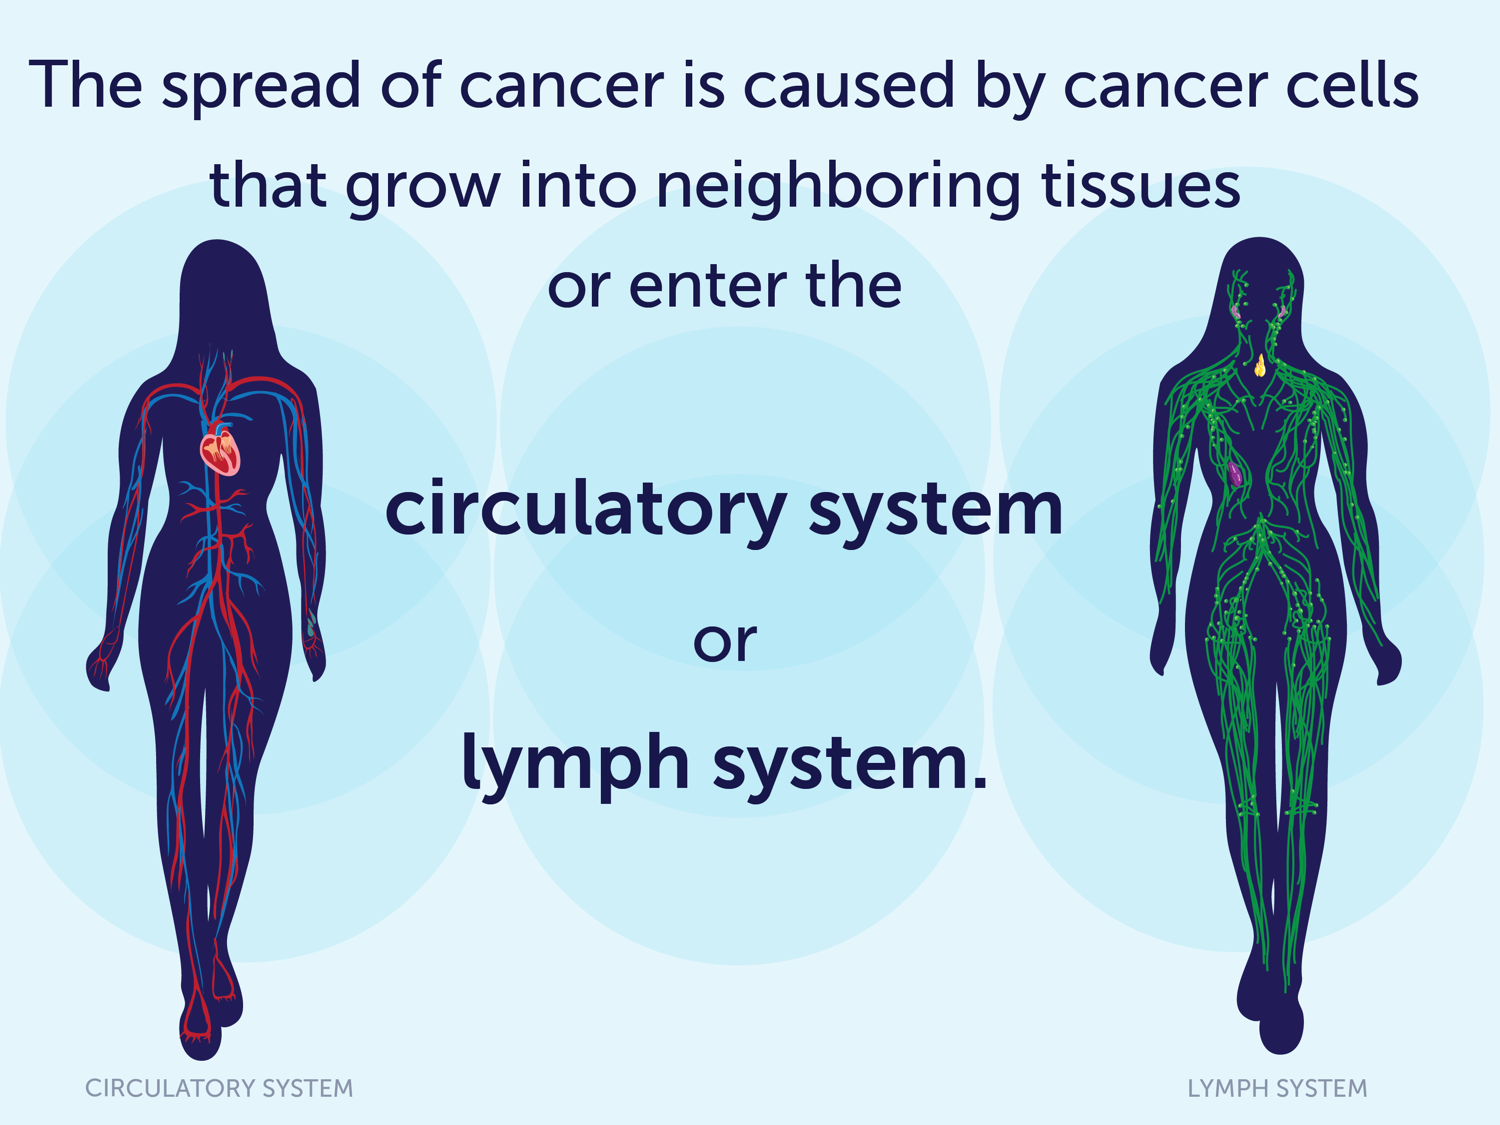 The spread of cancer is caused by cancer cells that grow into neighboring tissues or enter the circulatory system or lymph system.